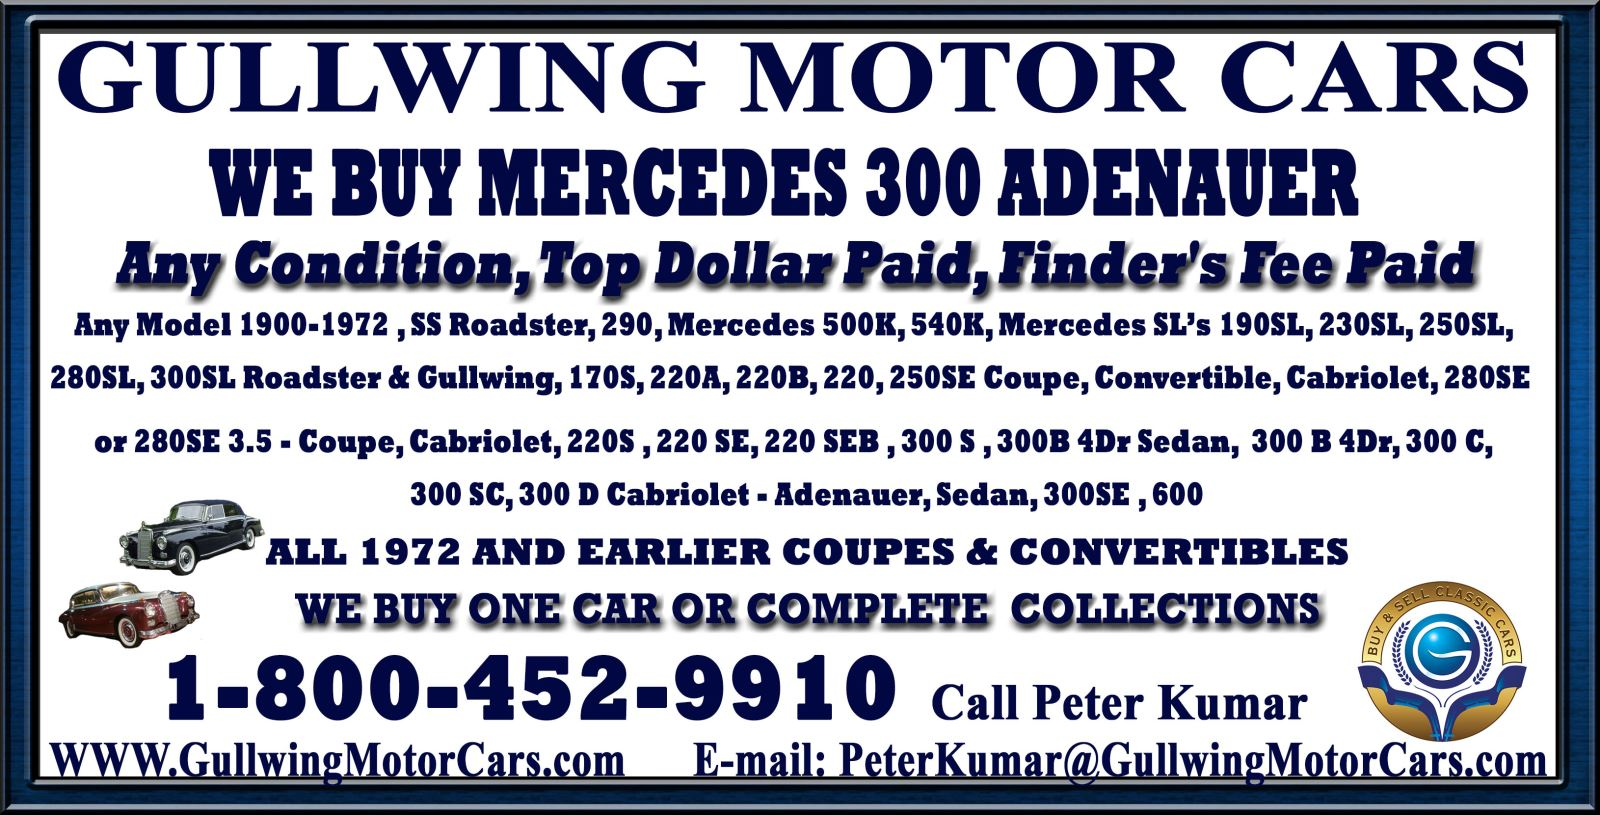 Sell Classic Mercedes 300 Adenauer | Call Gullwing Motor if Vintage Mercedes 300 Adenauer For Sale